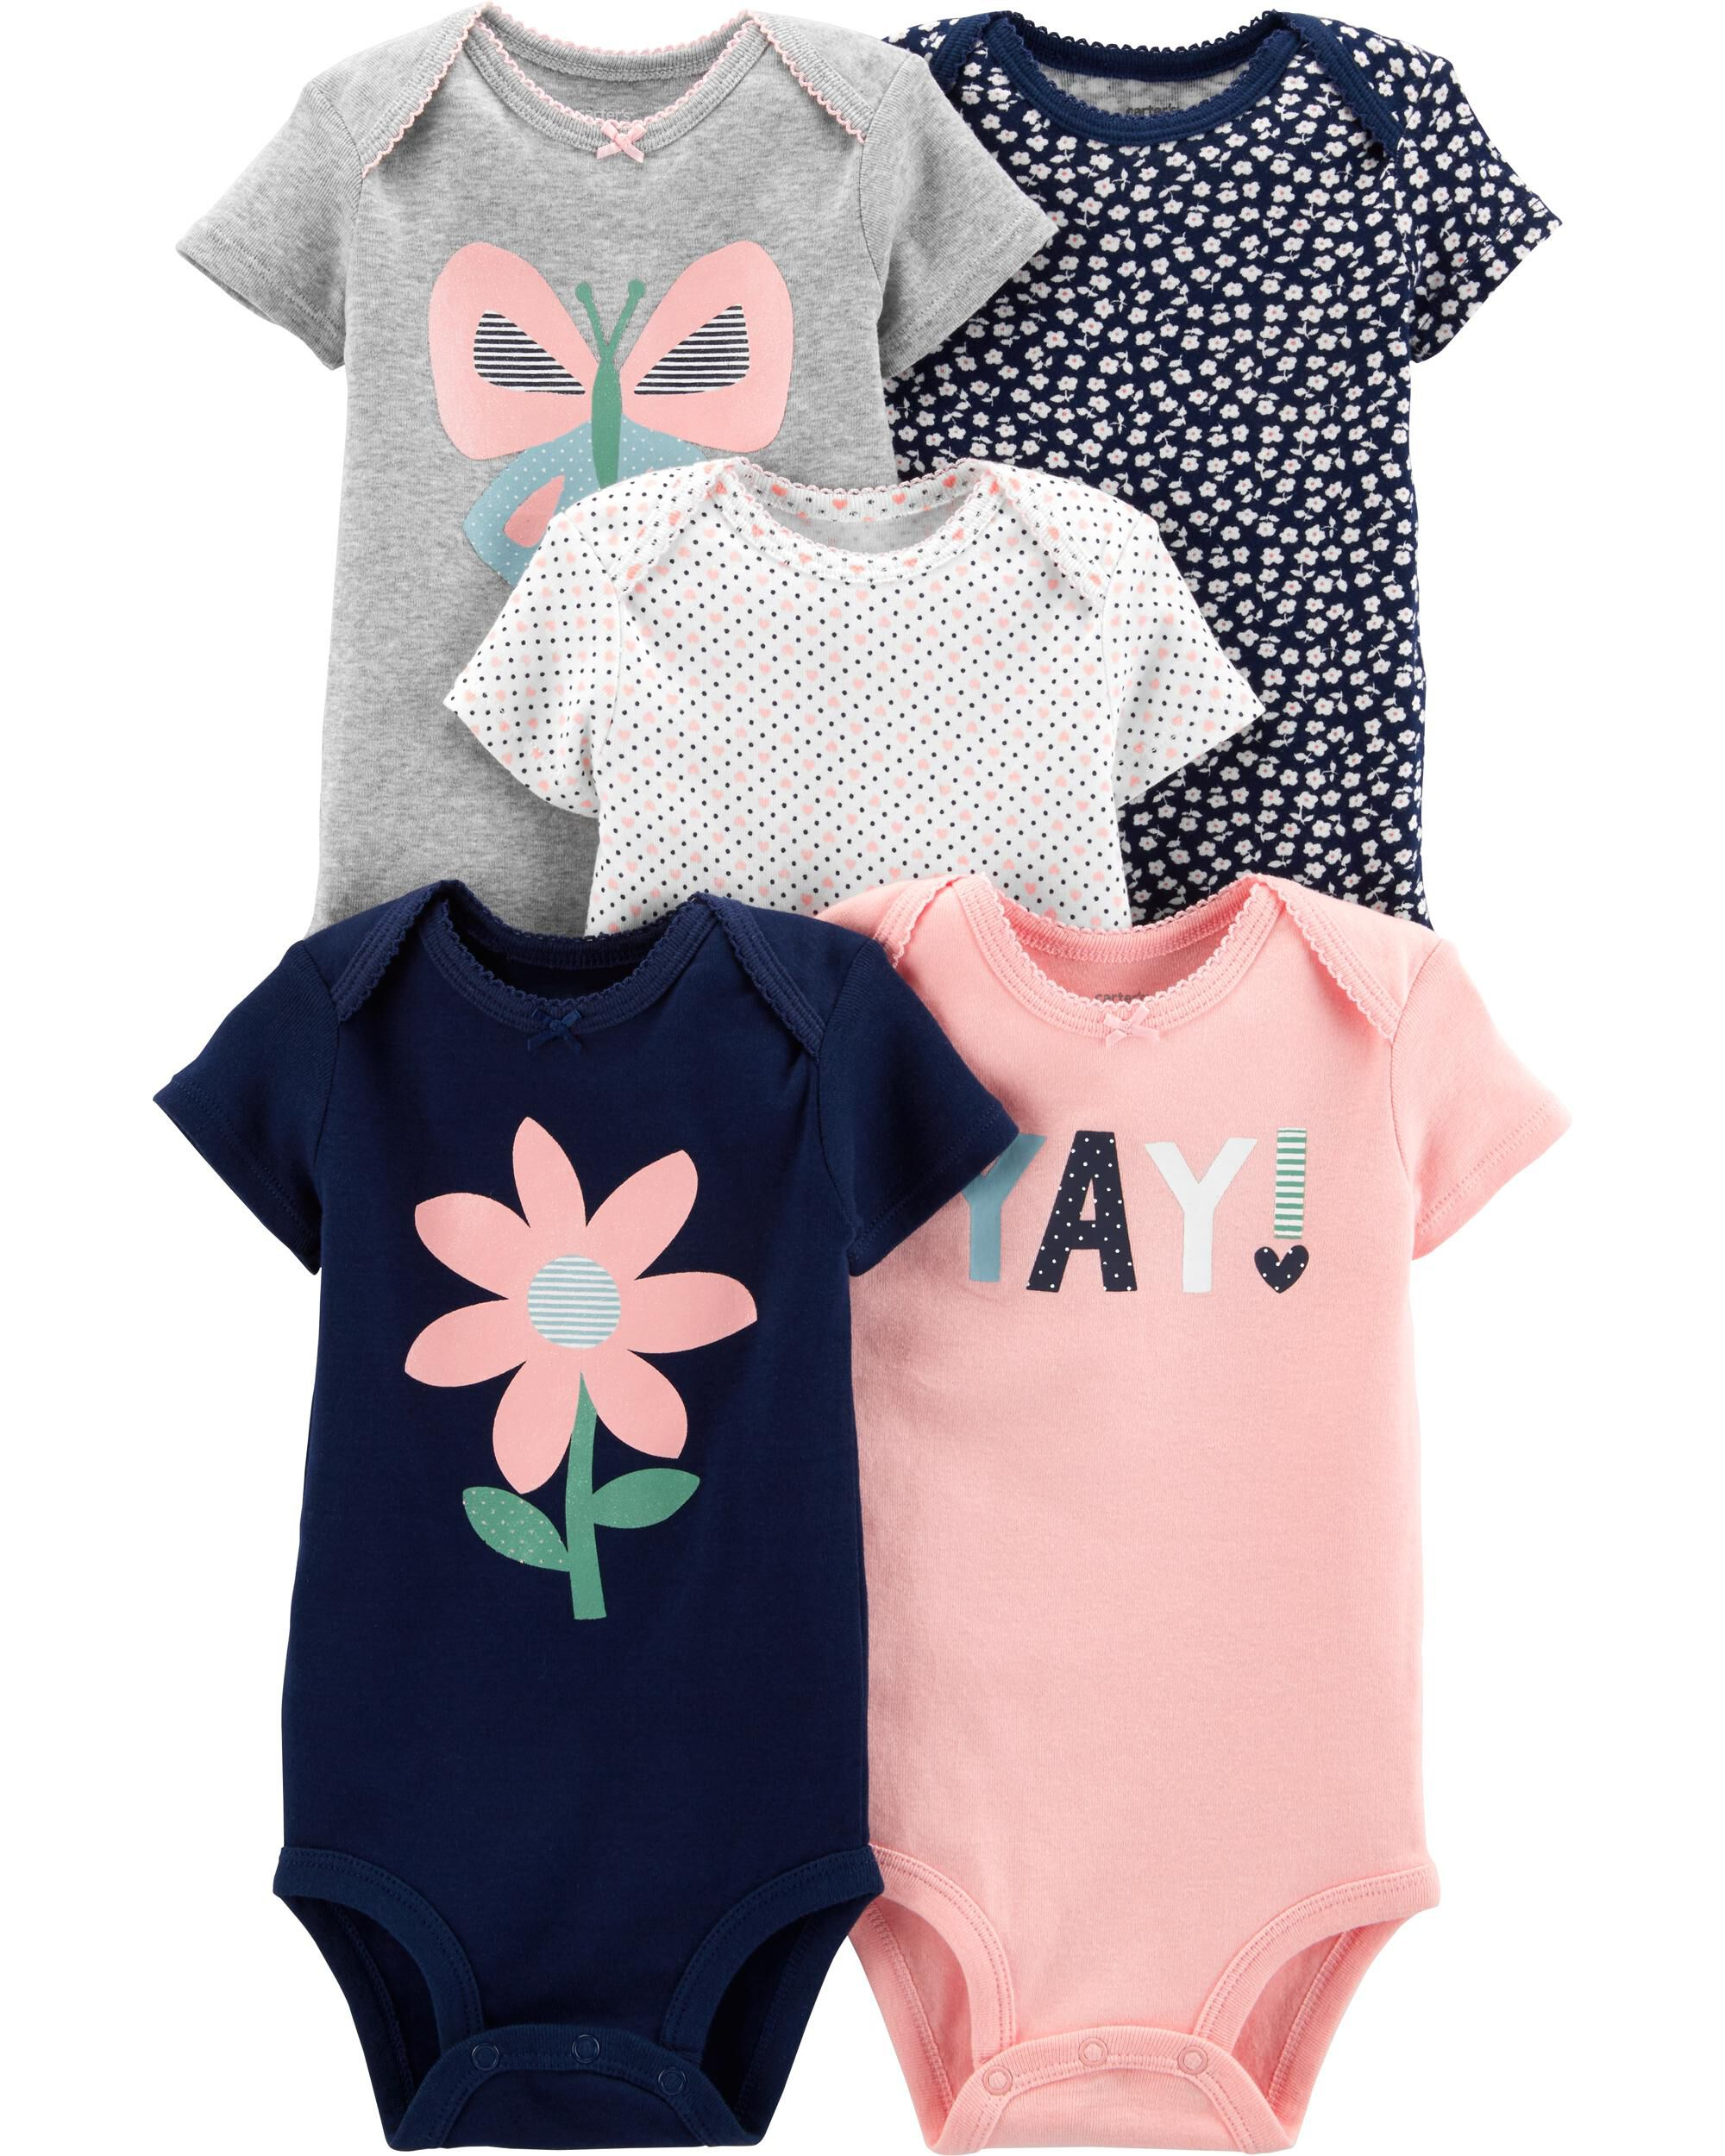 Girls' Clothing (0-24 Months) Hearty Girls All In One Age 0-3 Months 3 Pack Clothes, Shoes & Accessories